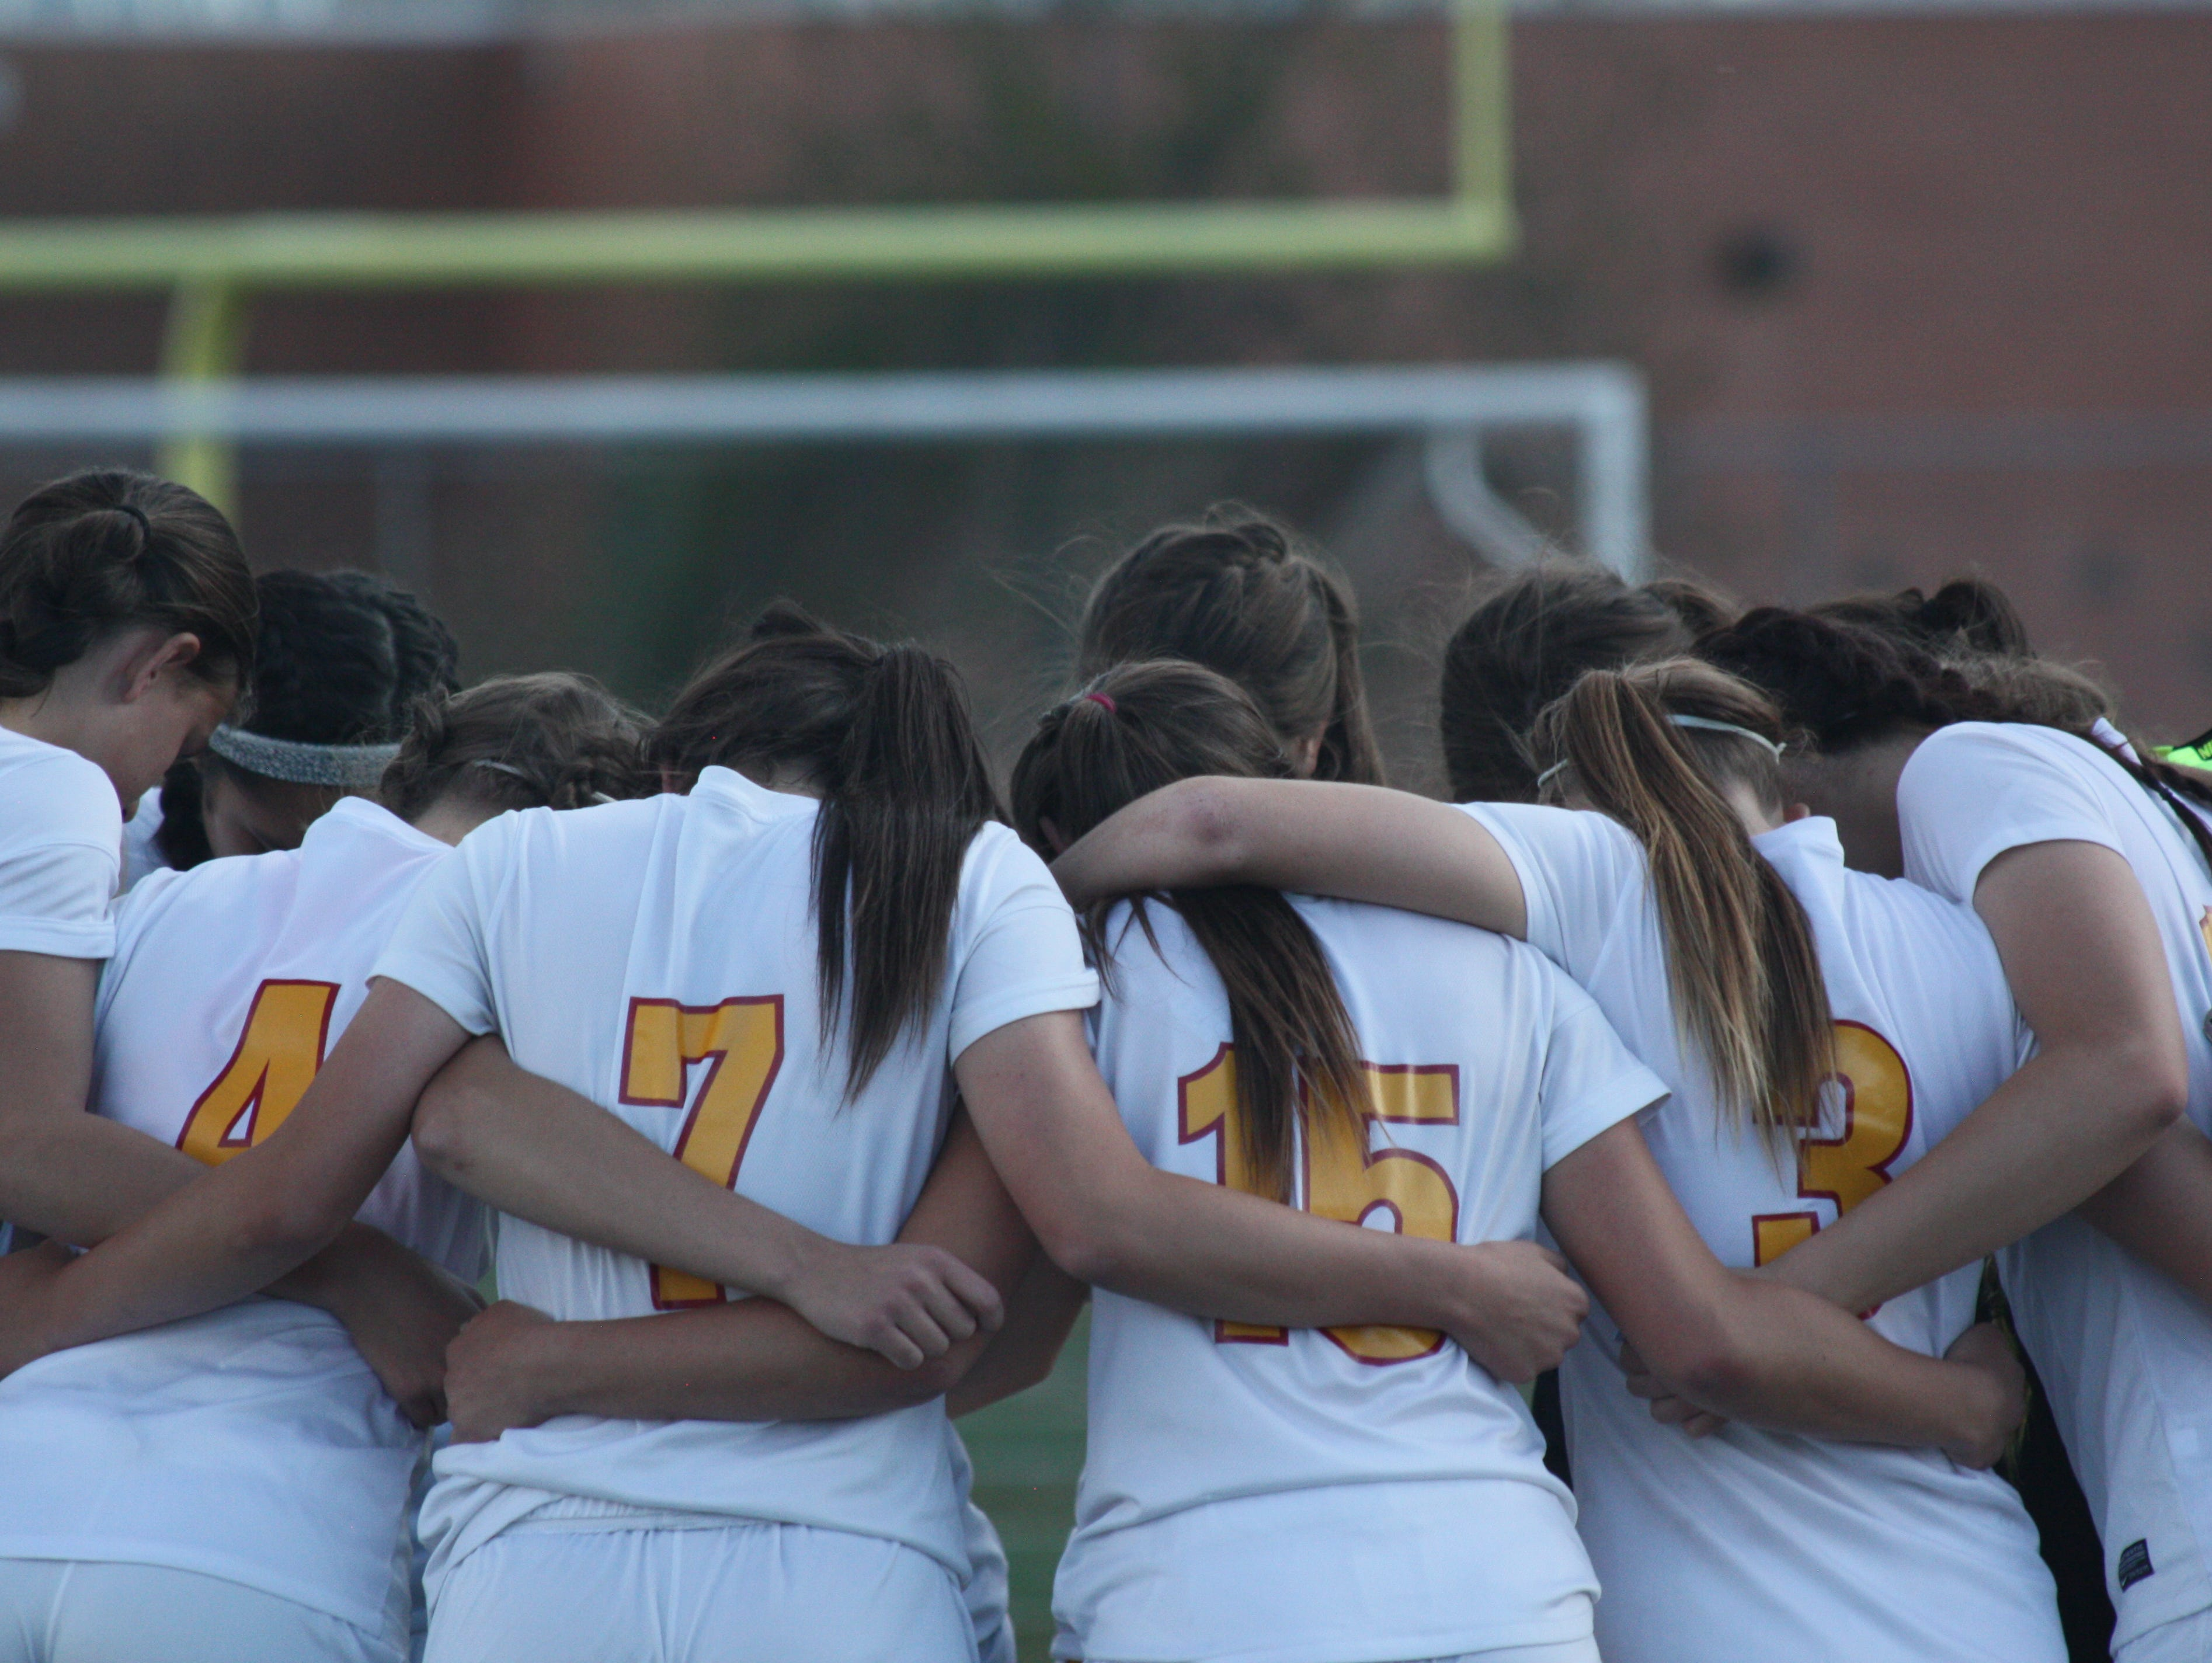 The Rocky Mountain girls soccer team huddles before playing Fort Collins on Saturday night. The Lobos won 5-0.